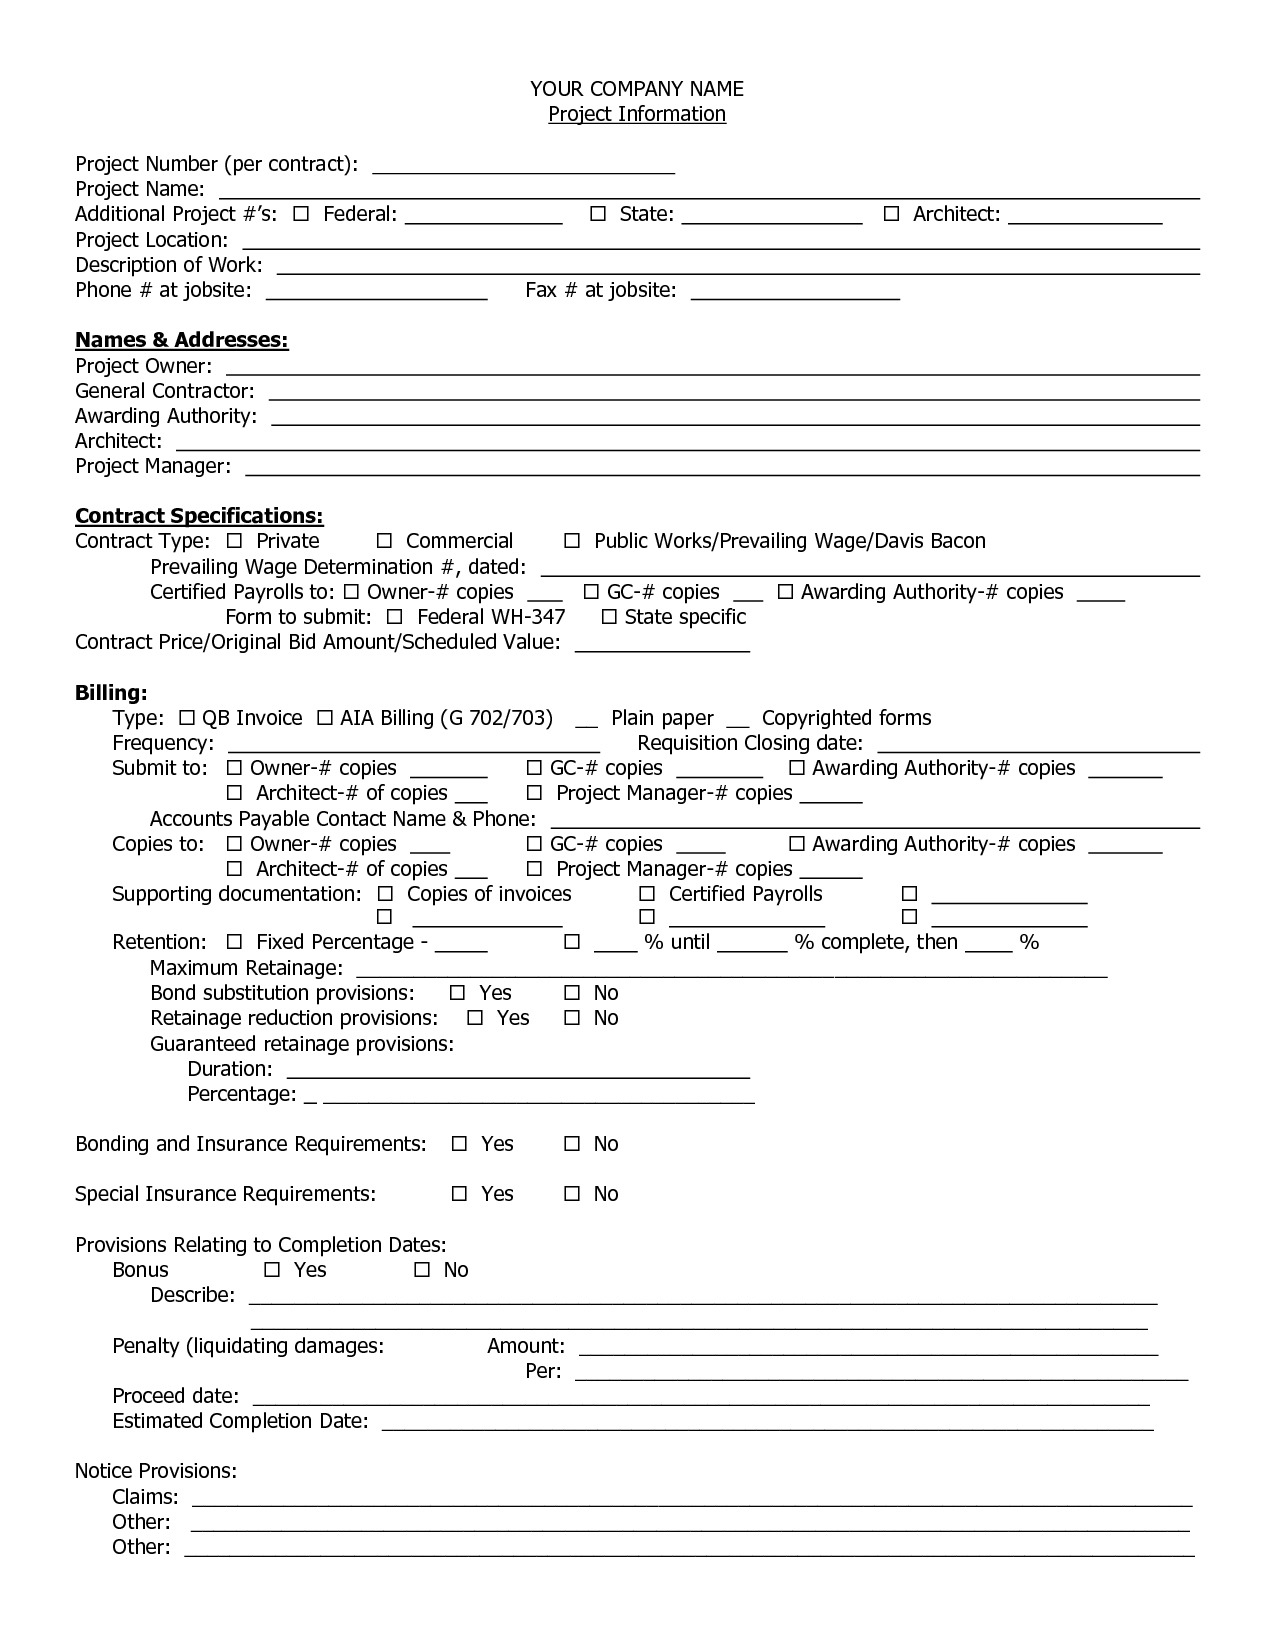 Aia Invoice Form * Invoice Template Ideas